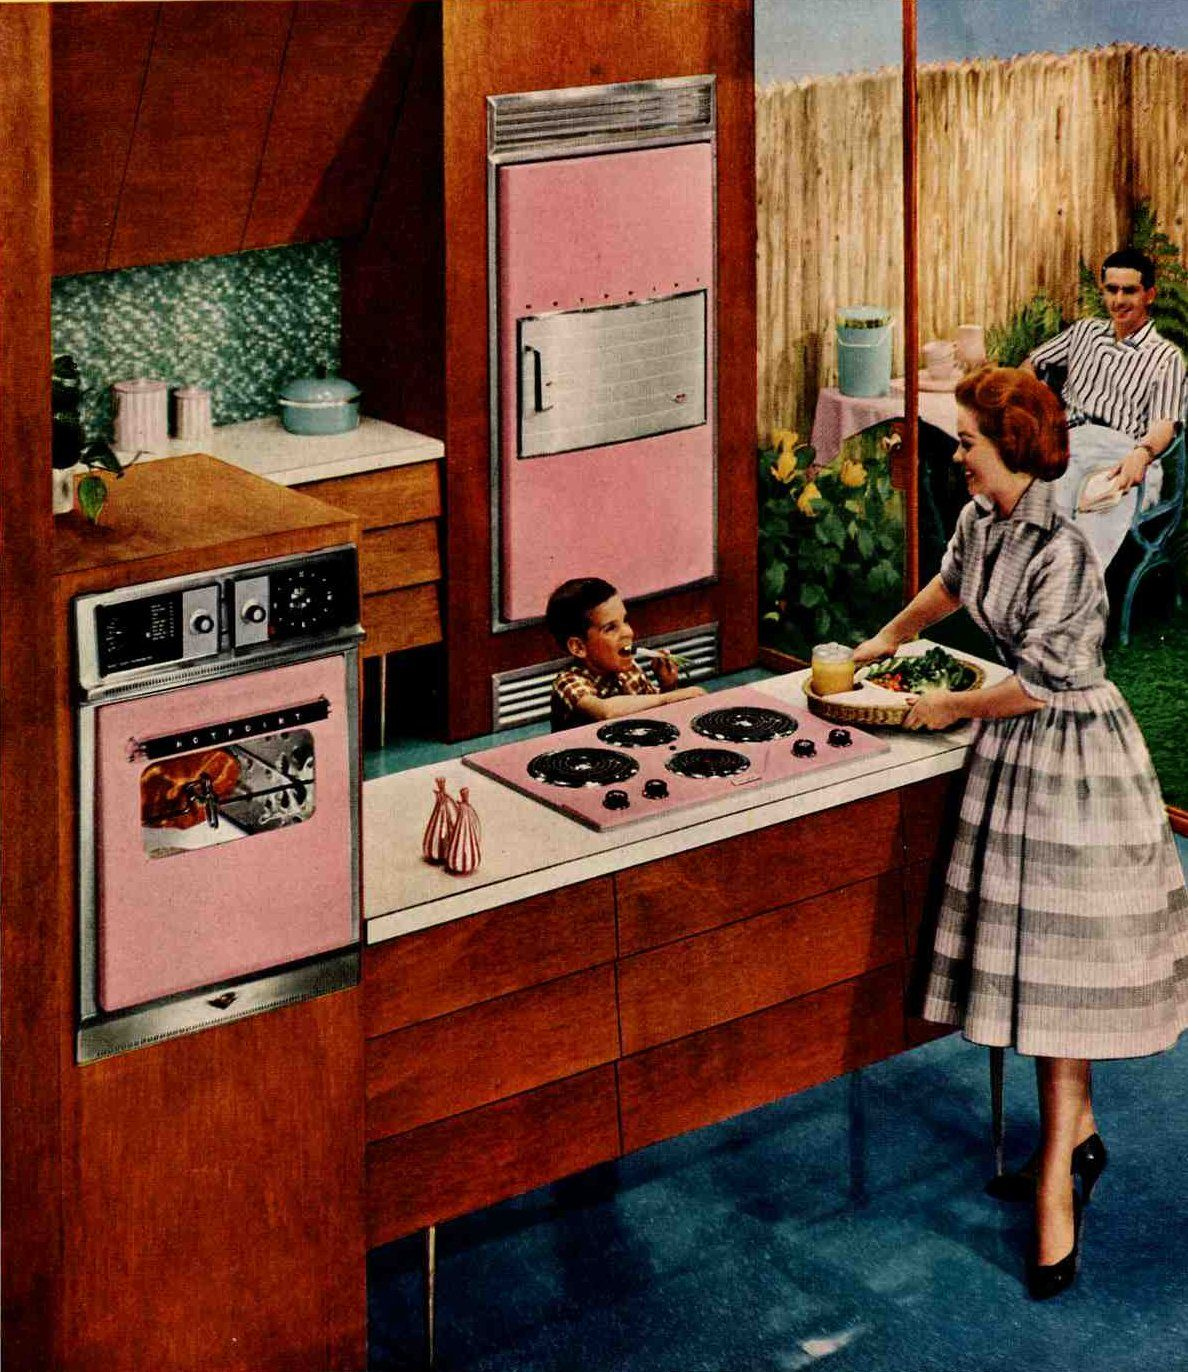 Retro Style Kitchen 1960s Inspiration Kitchens Kitchen Mid Century Modern